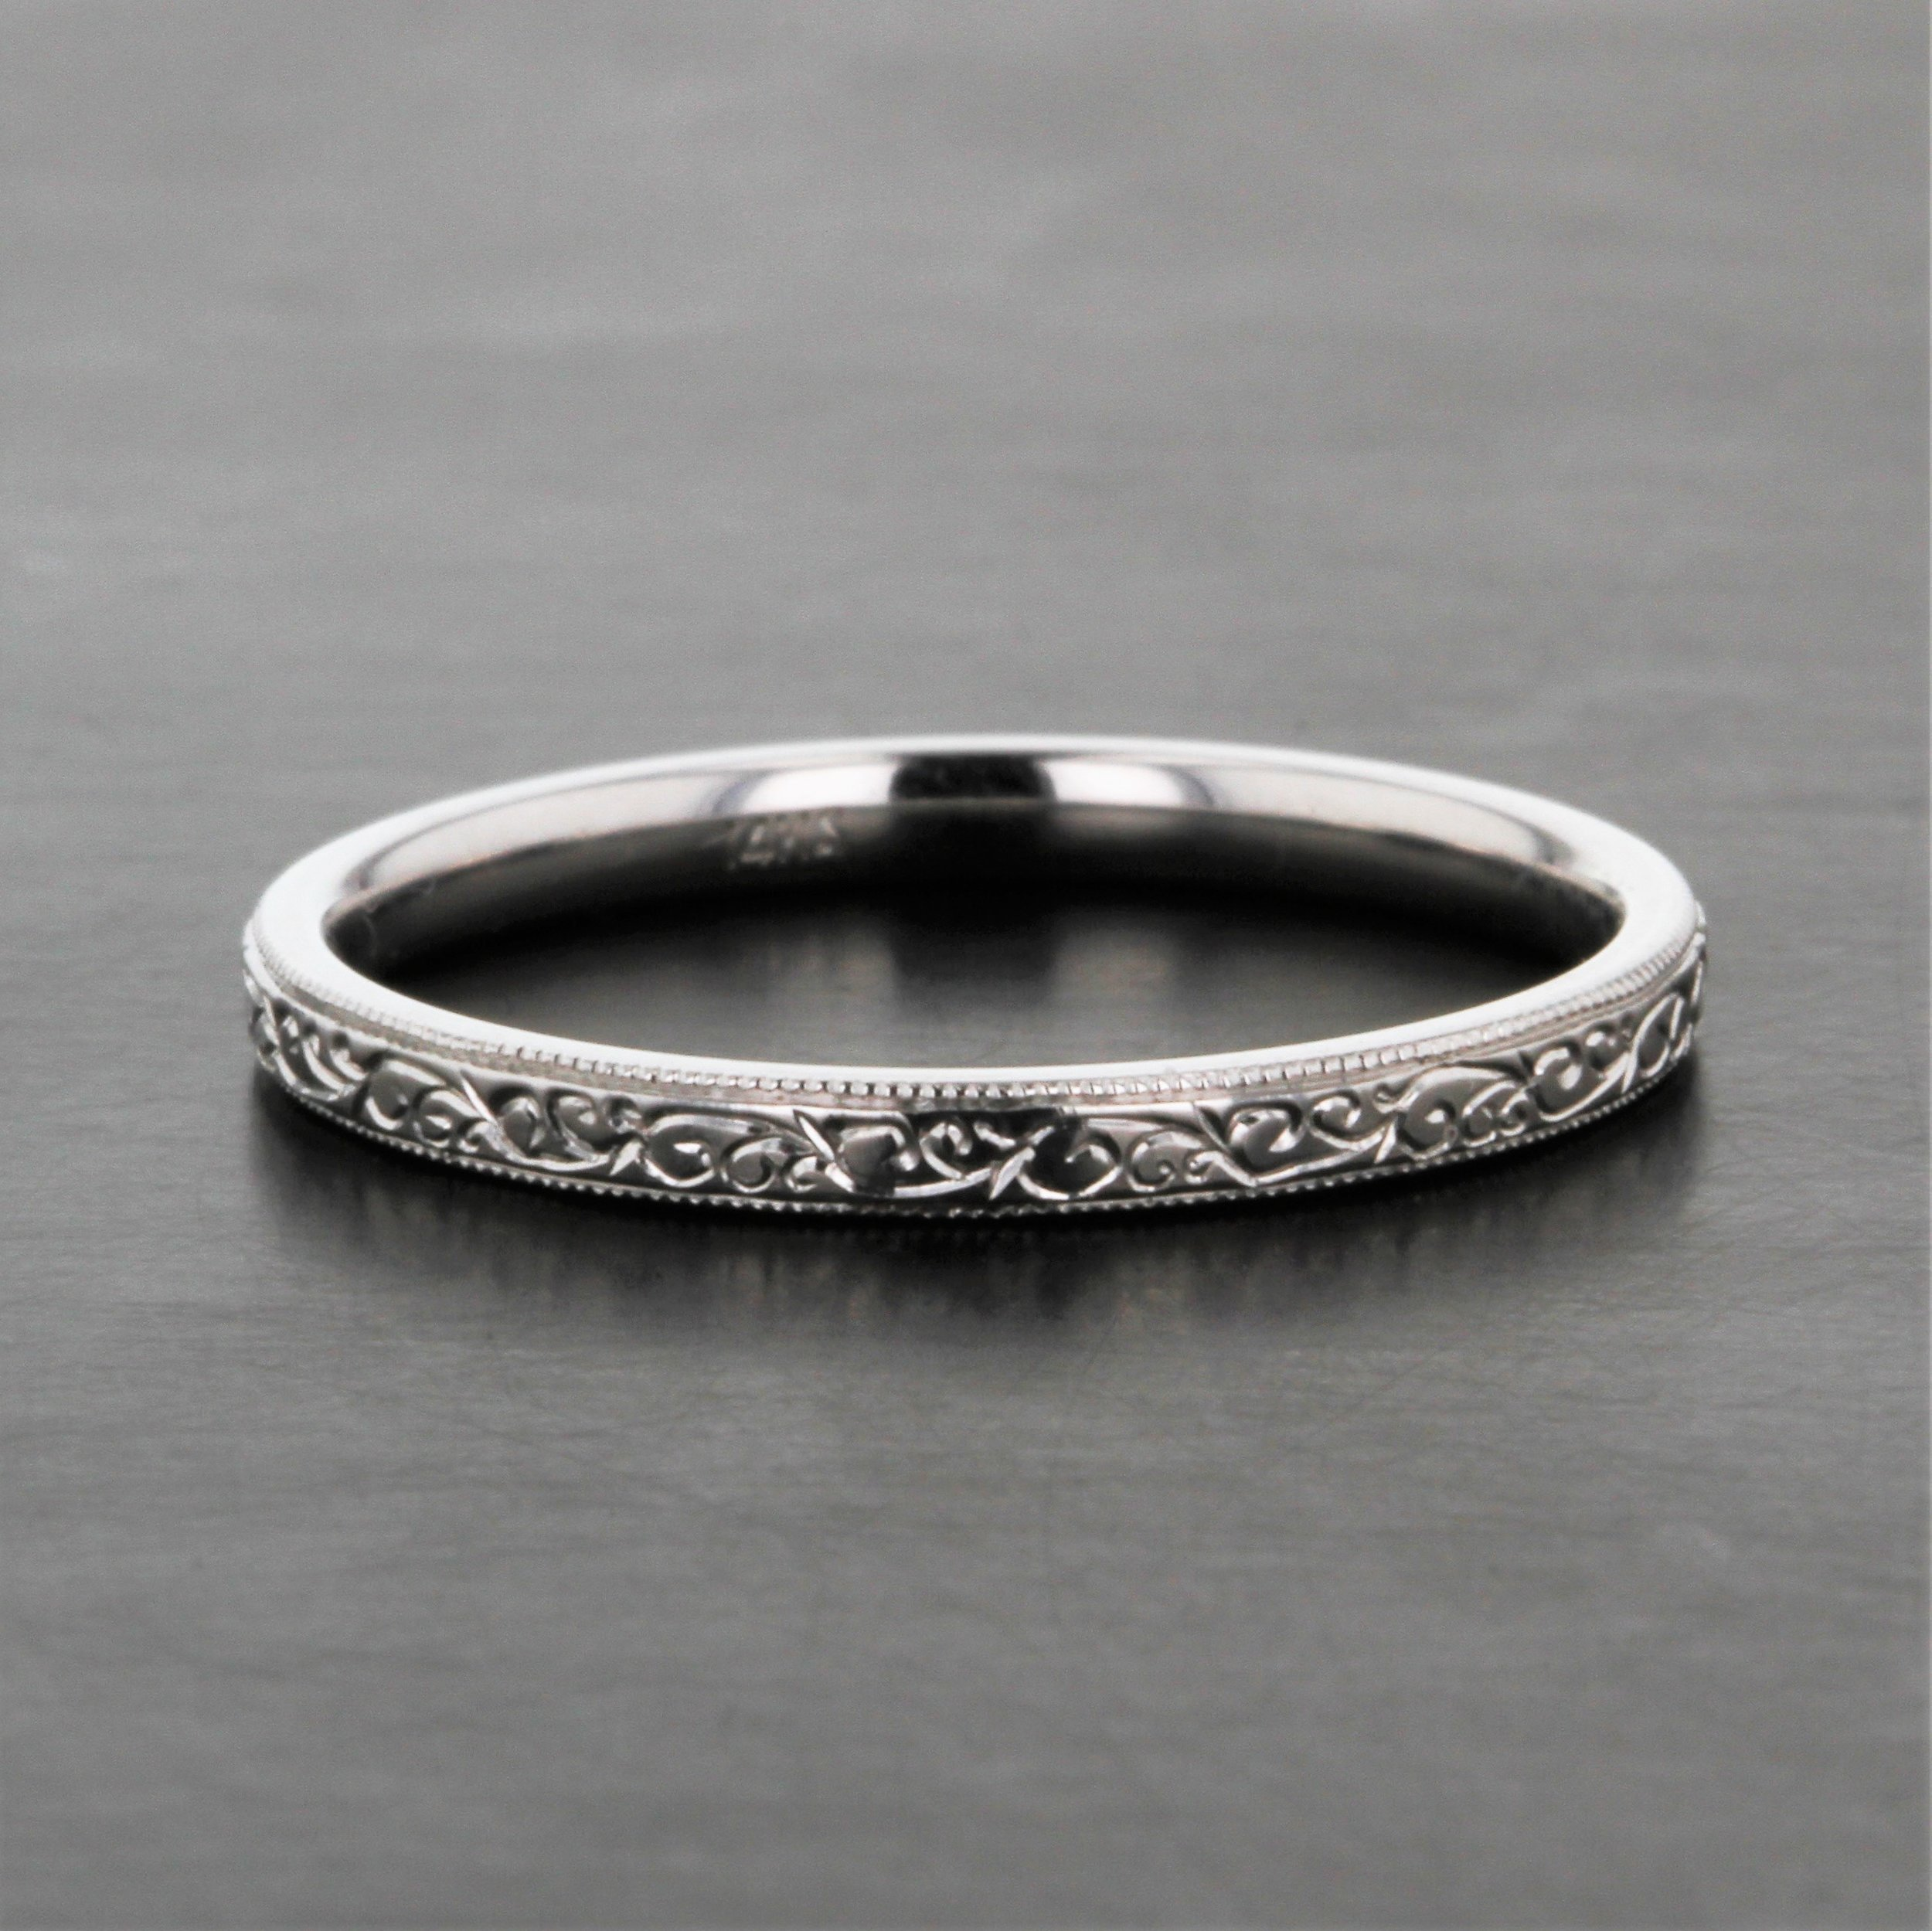 custom-platinum-delicate-hand-engraved-stacking-ring-wedding-band.jpg